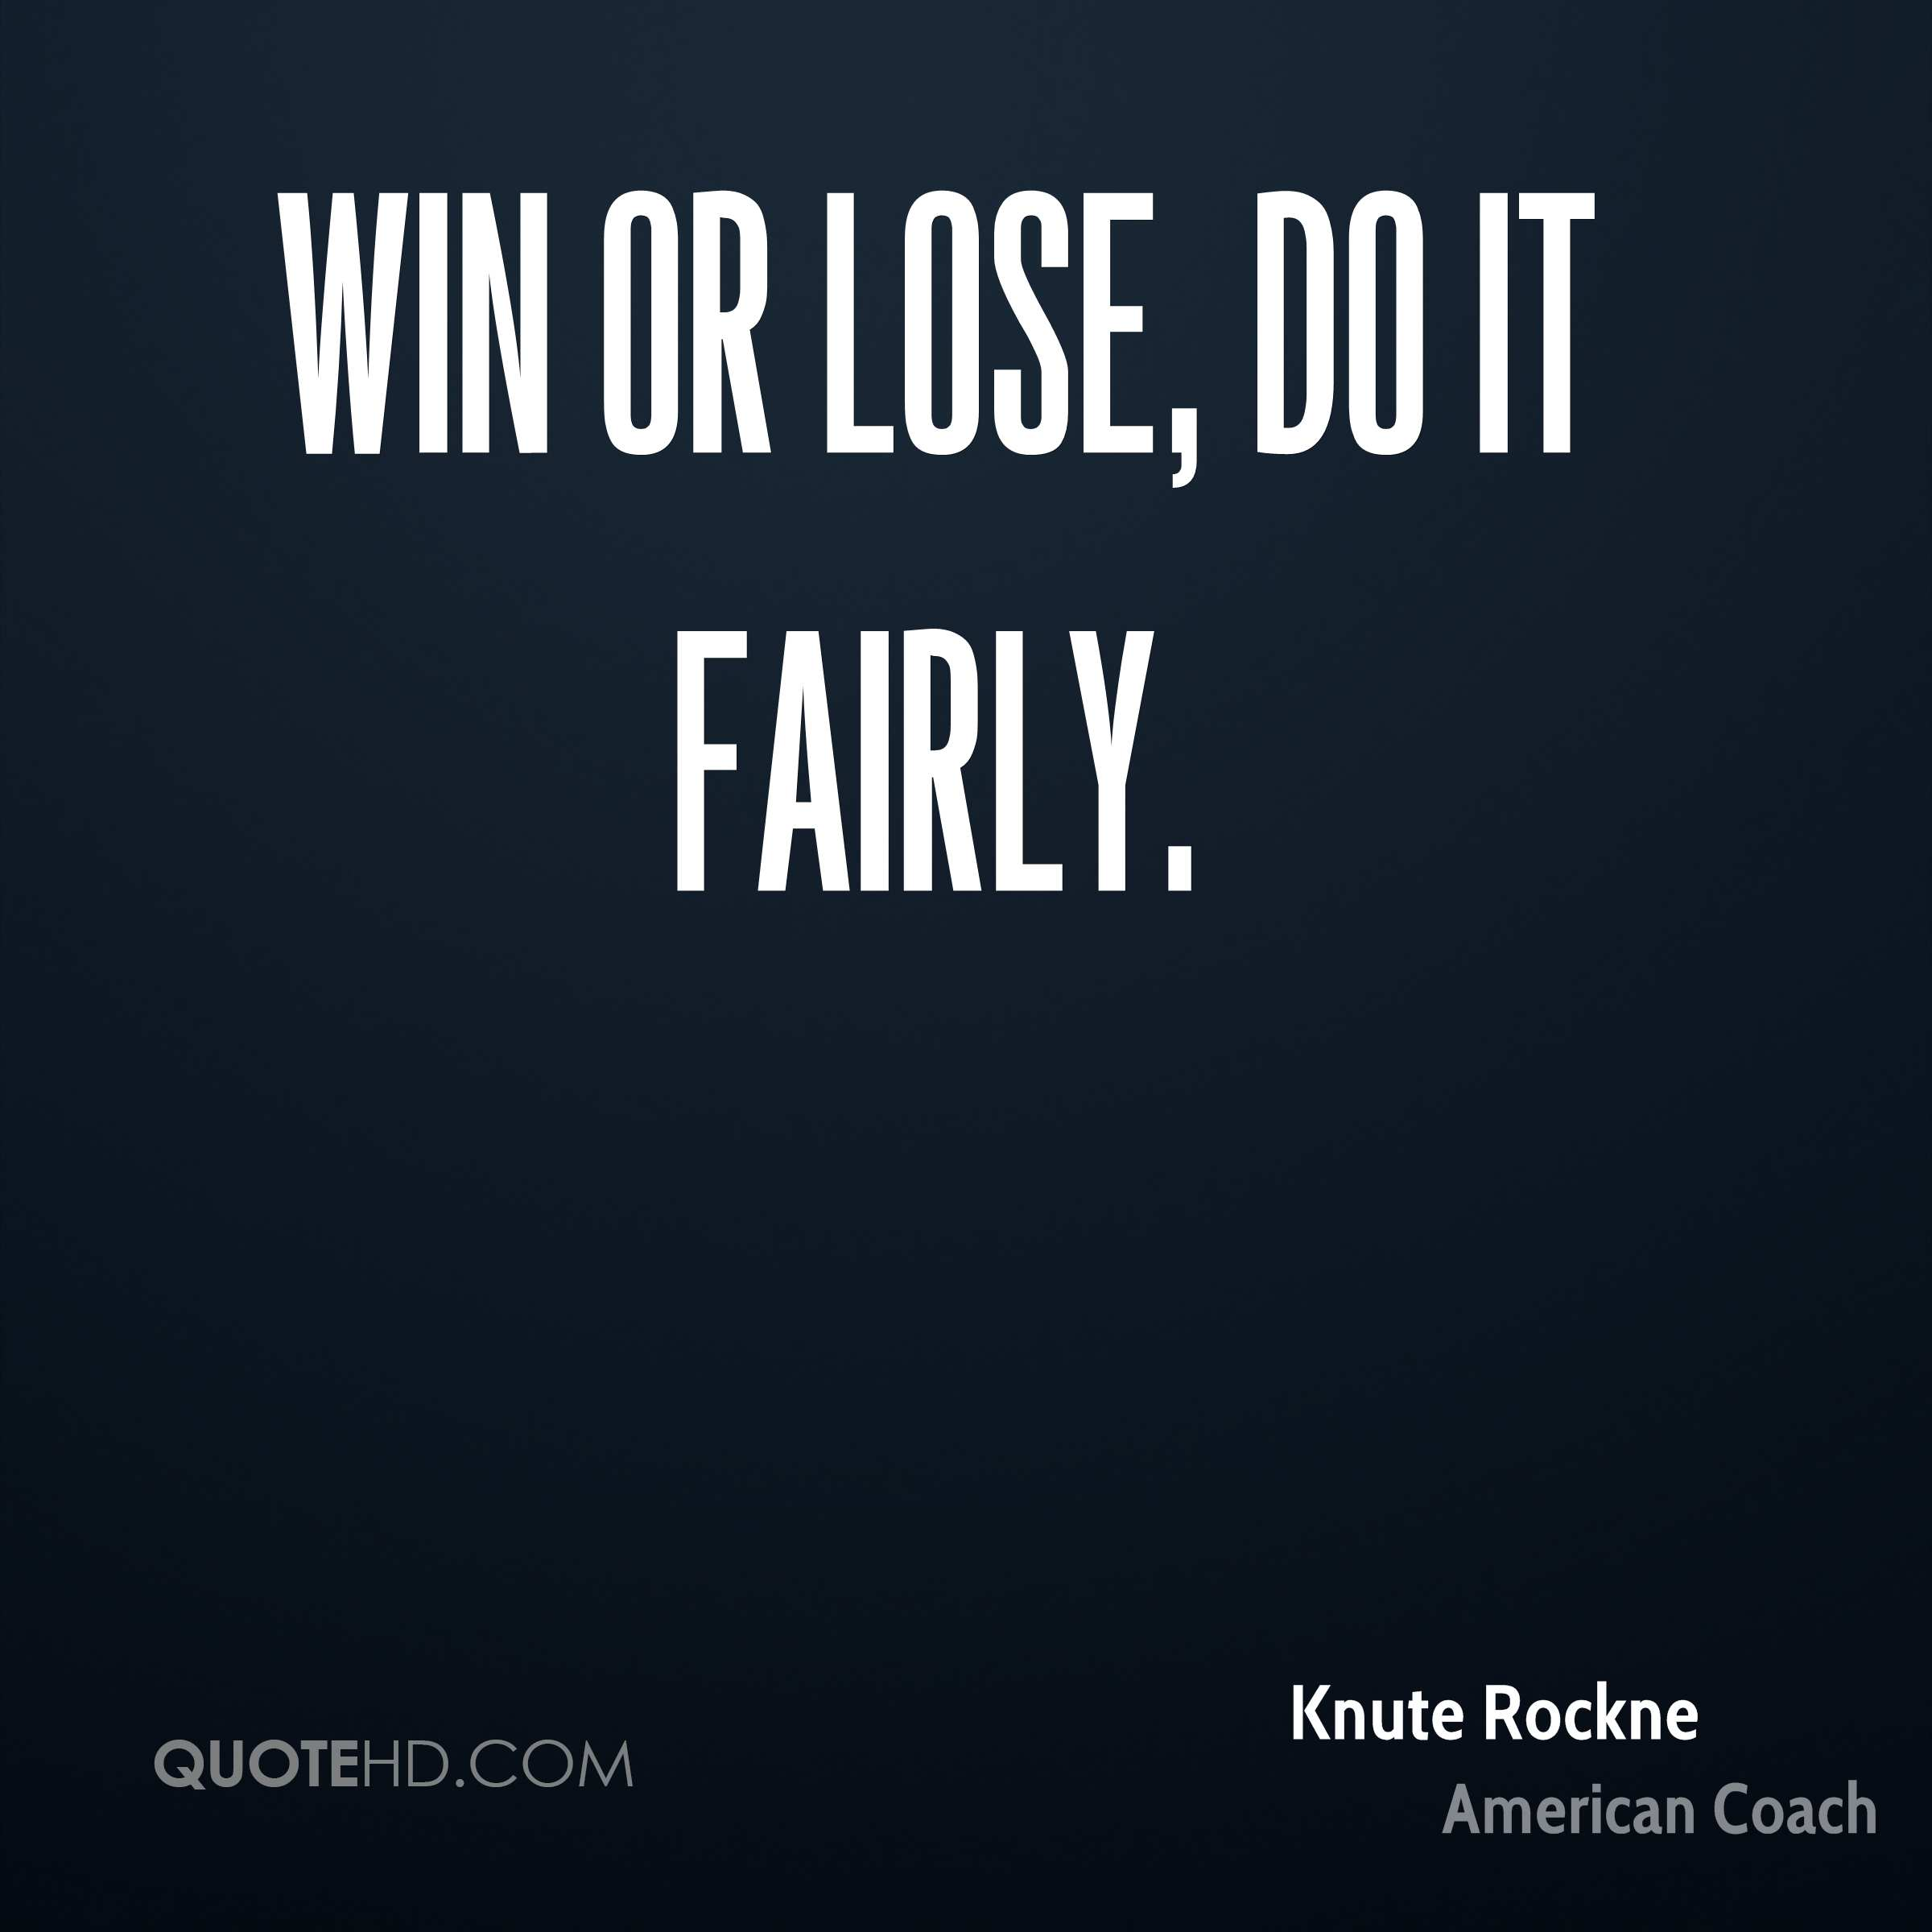 Win Or Lose Quotes Knute Rockne Quotes  Quotehd